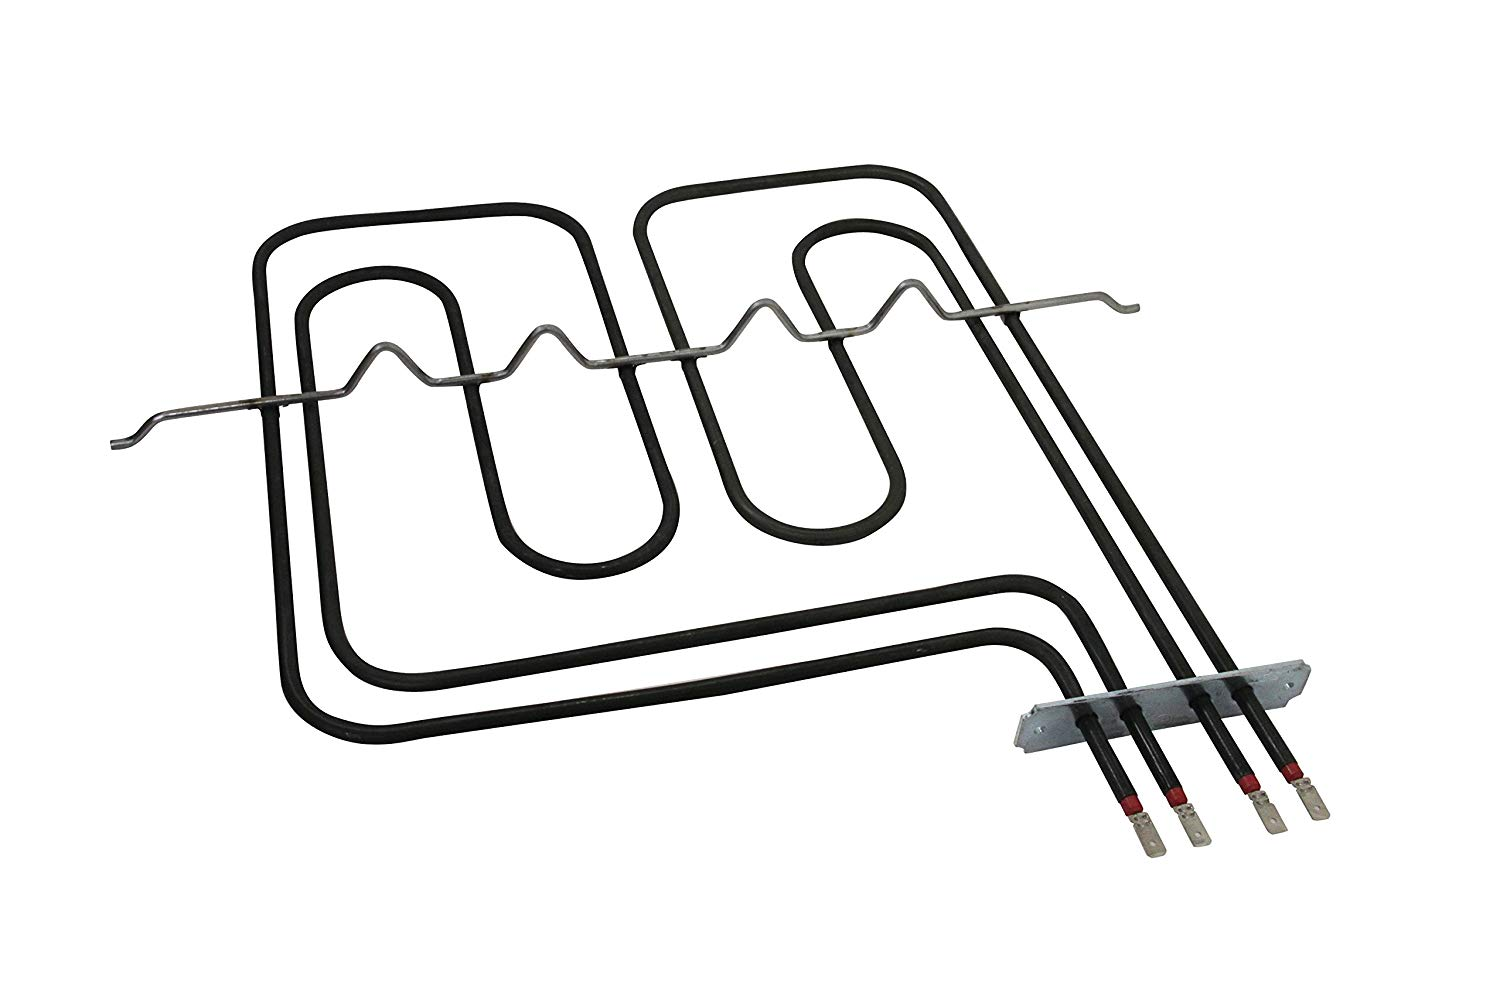 1500x1000 cannon hotpoint grill dual grill heater element genuine part